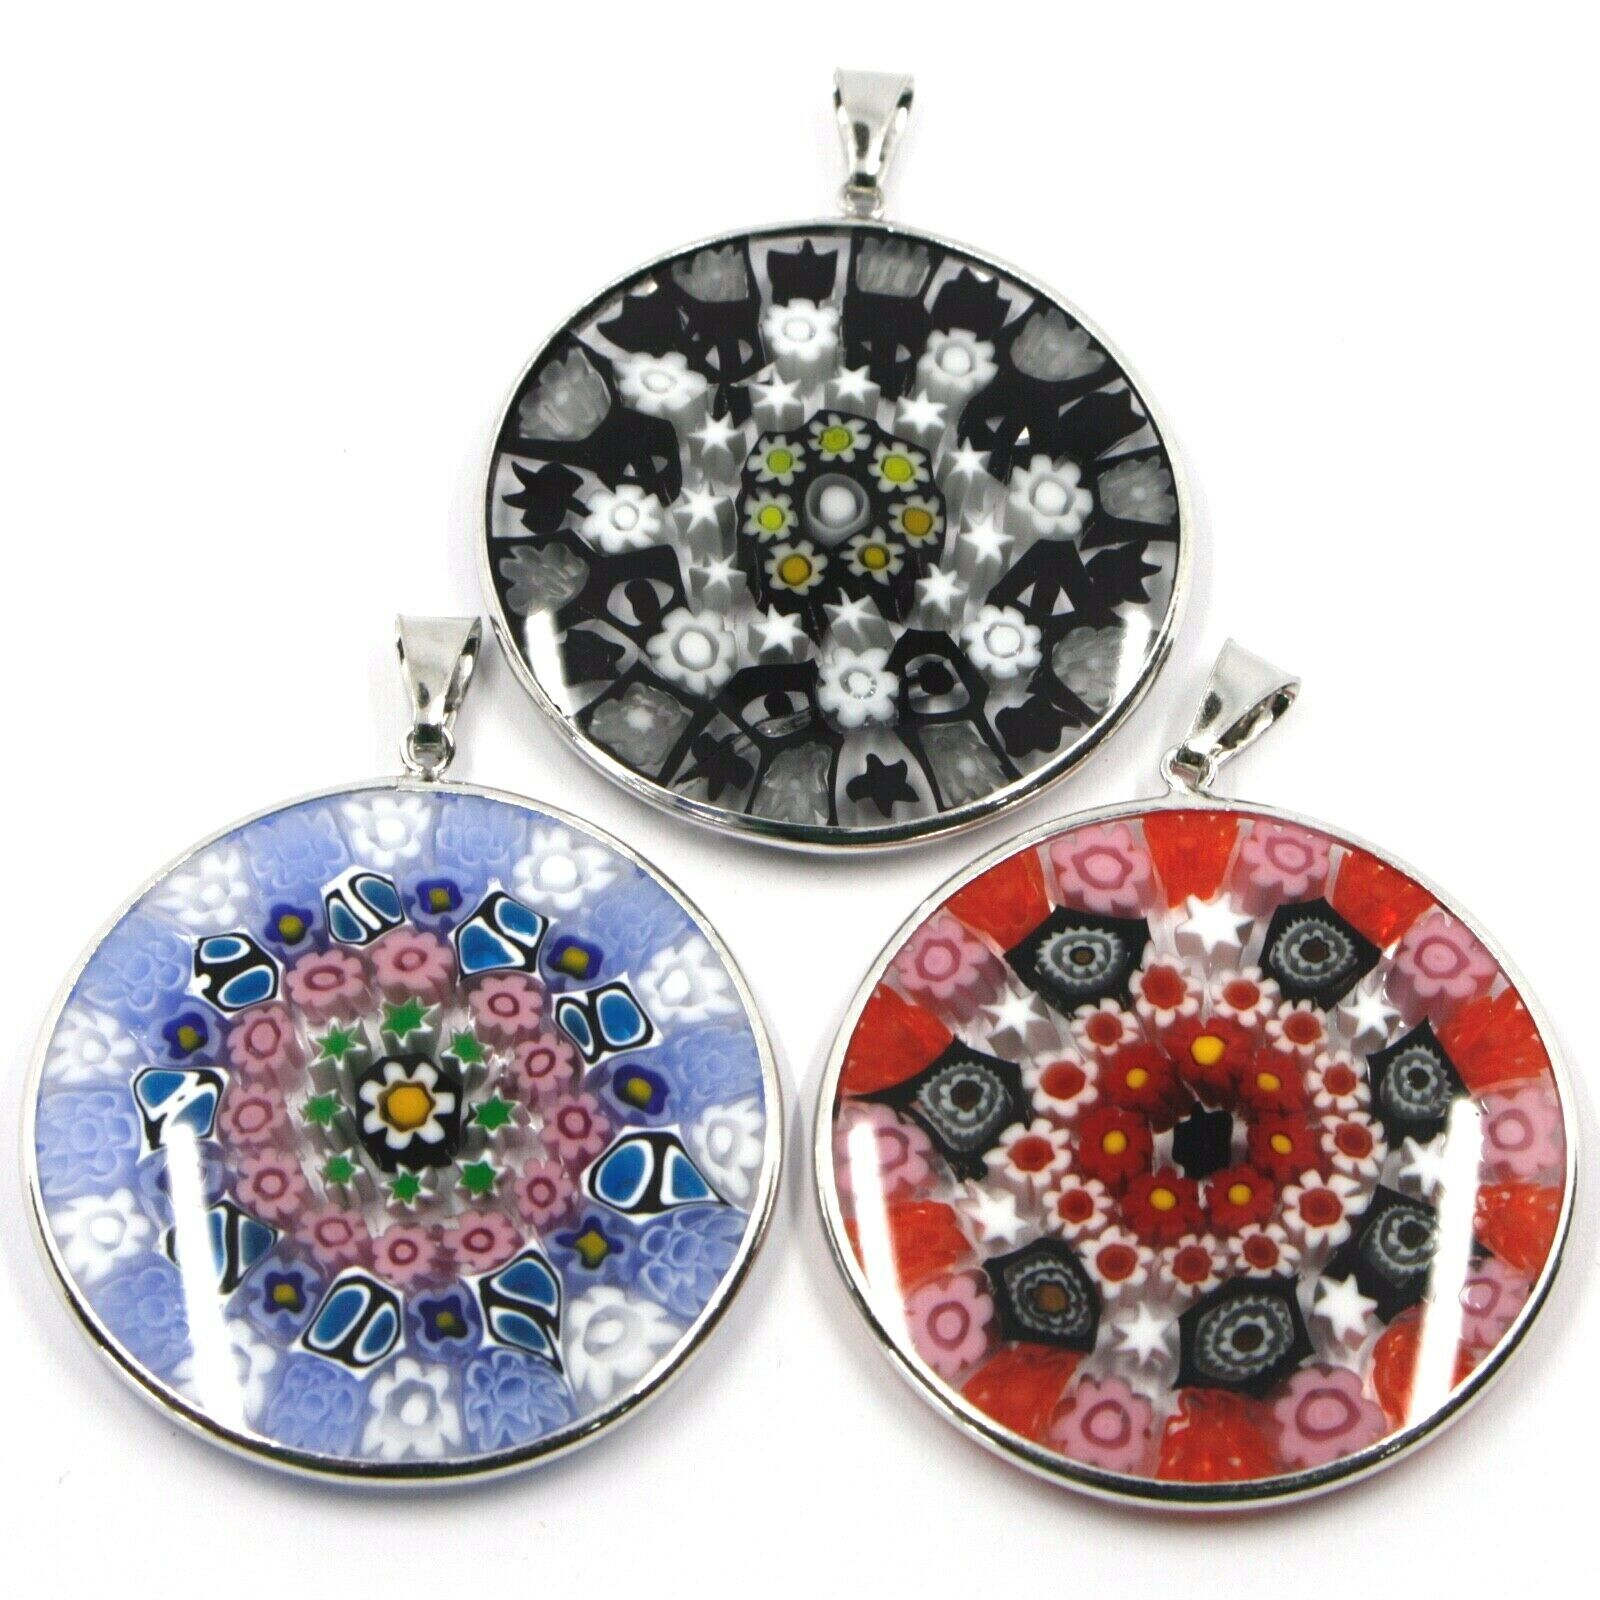 3 X 925 STERLING SILVER ROUND BIG 36mm PENDANT MURANO GLASS MULTICOLOR MURRINE